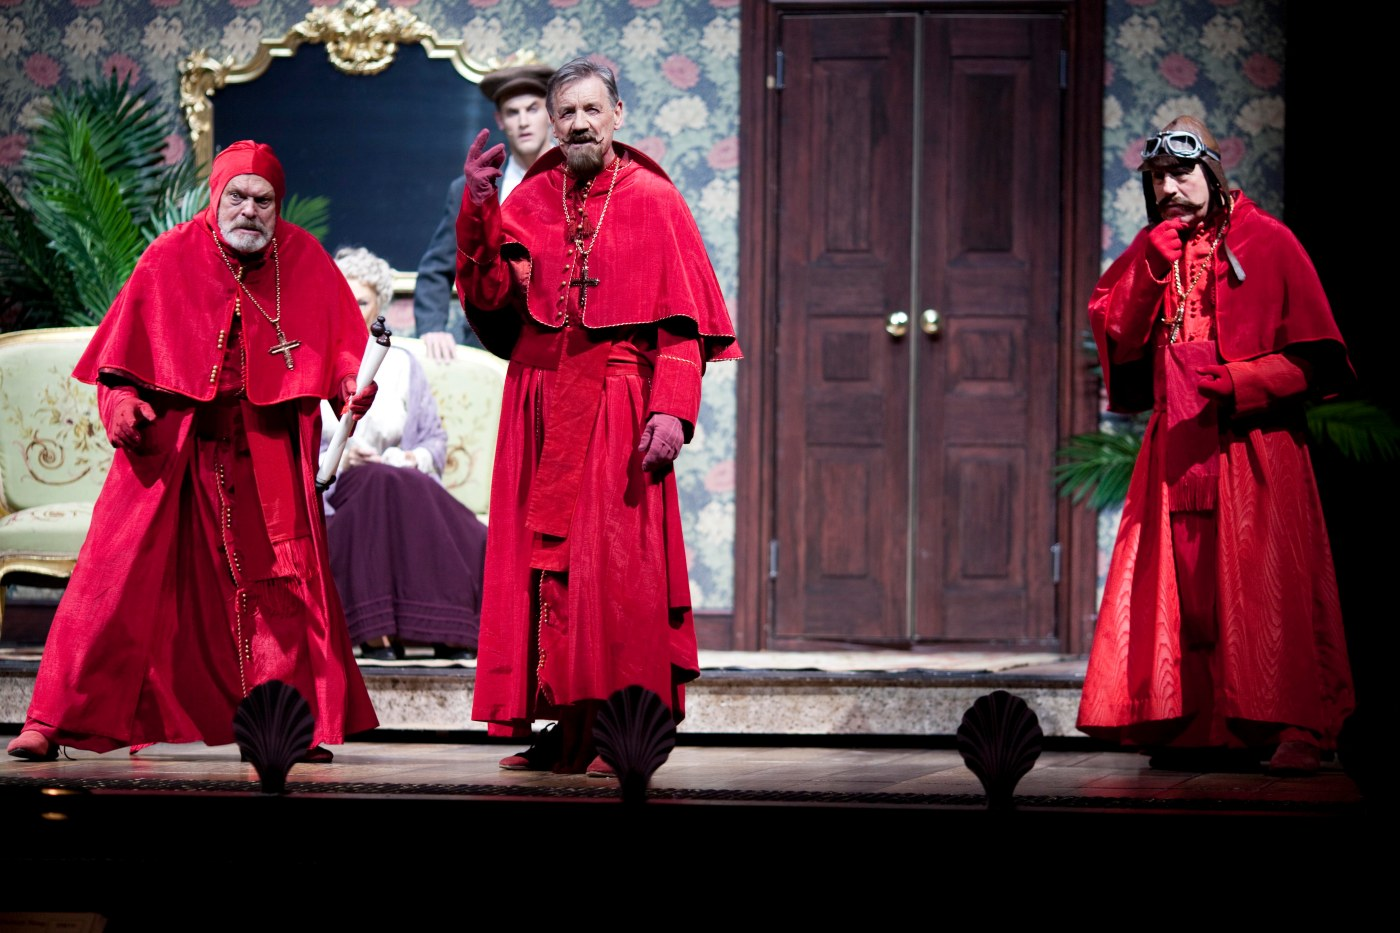 monty python spanish inquisition sketch | The Lonely Tribalist